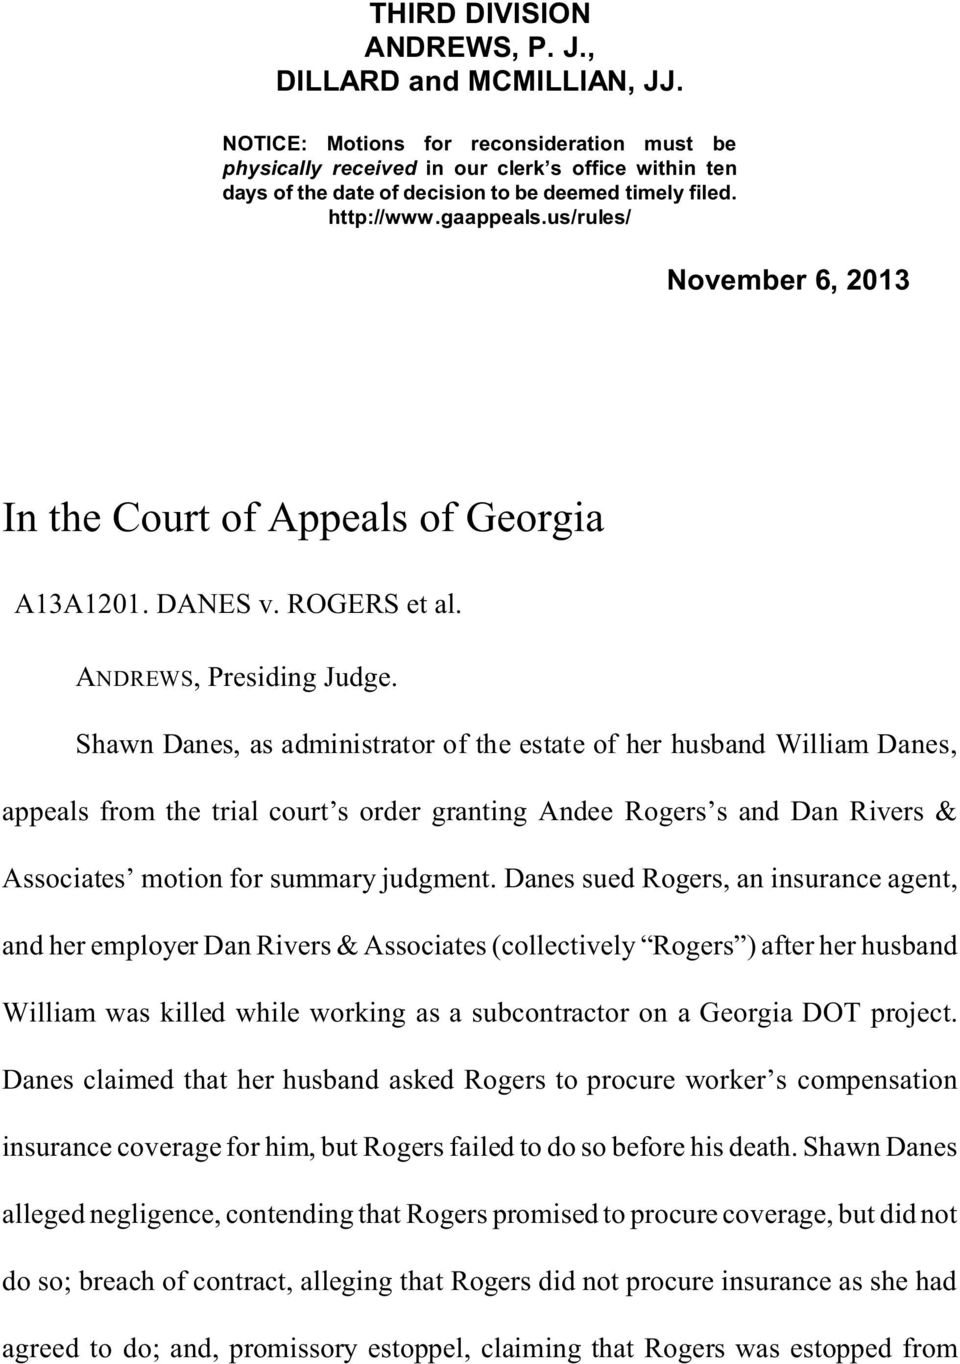 us/rules/ November 6, 2013 In the Court of Appeals of Georgia A13A1201. DANES v. ROGERS et al. ANDREWS, Presiding Judge.